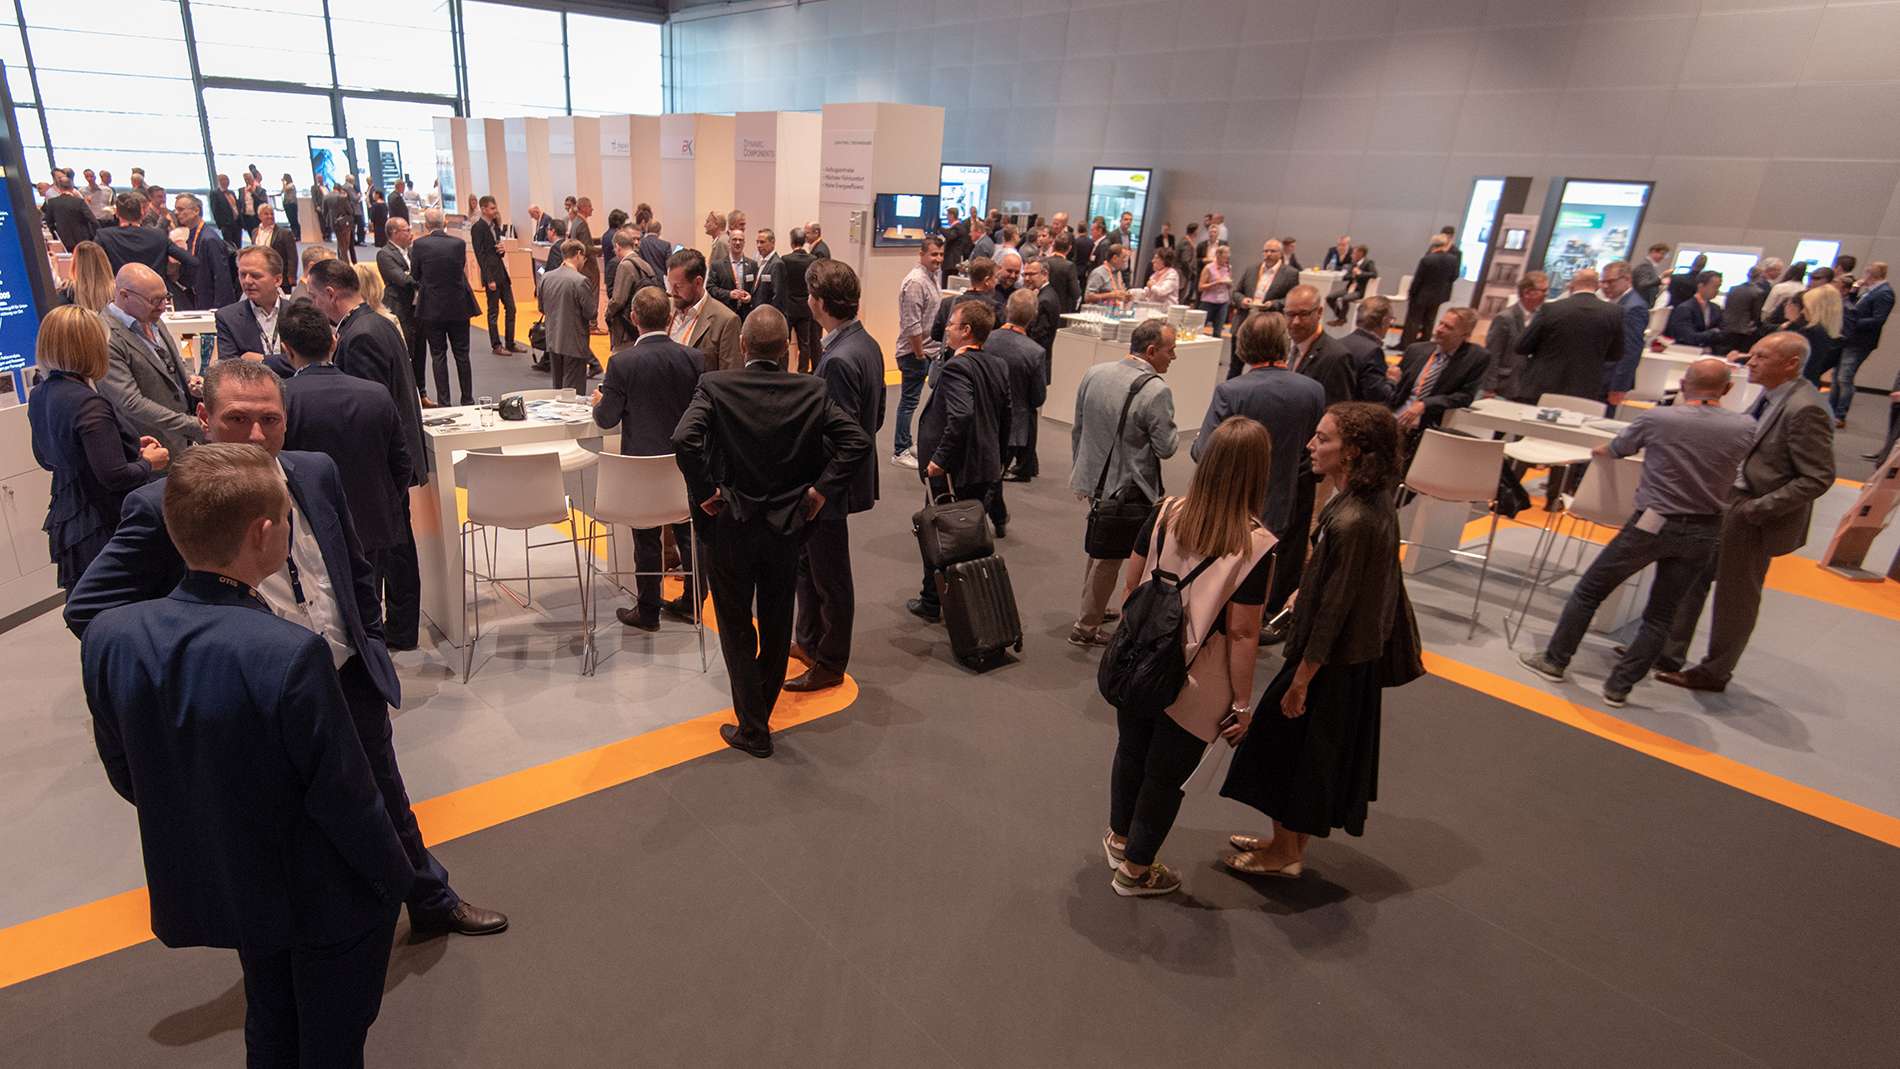 E2 Forum Frankfurt: the conference and exhibition generated great interest and were the setting for intensive networking. (Source: Messe Frankfurt GmbH / Sandra Gätke 2018)